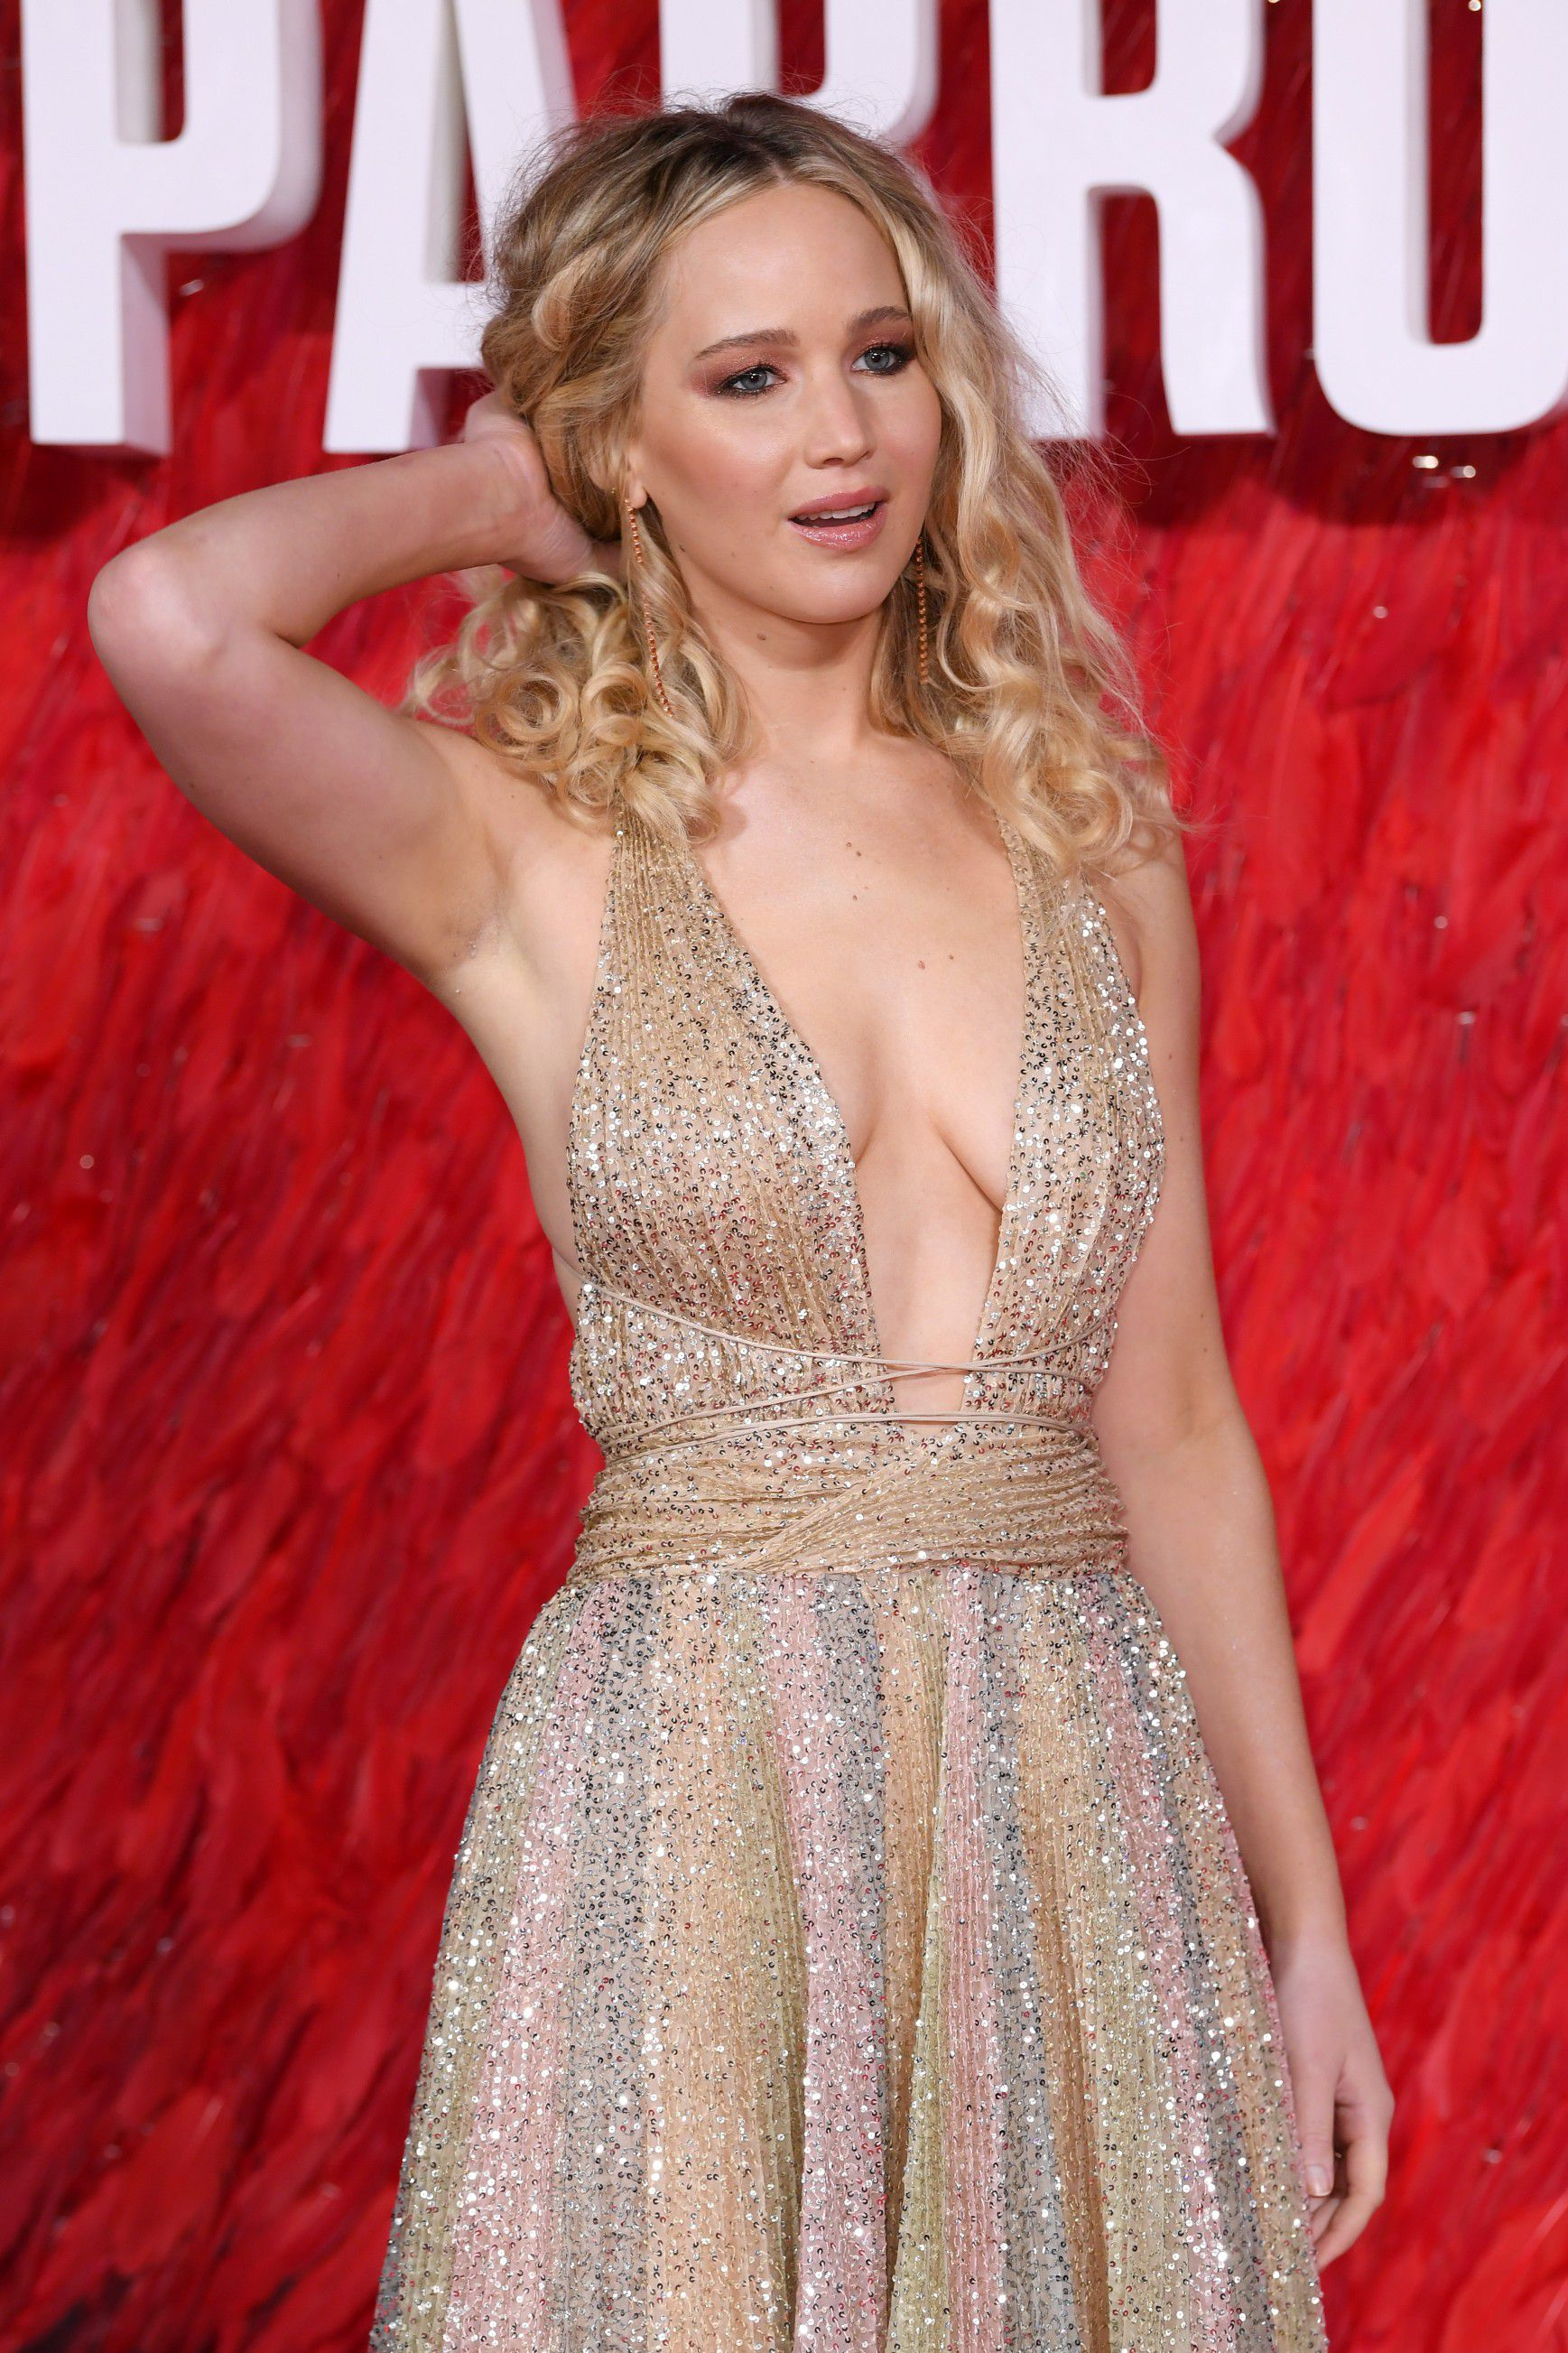 jennifer-lawrence-cleavage-at-red-sparrow-premiere-in-london-2074